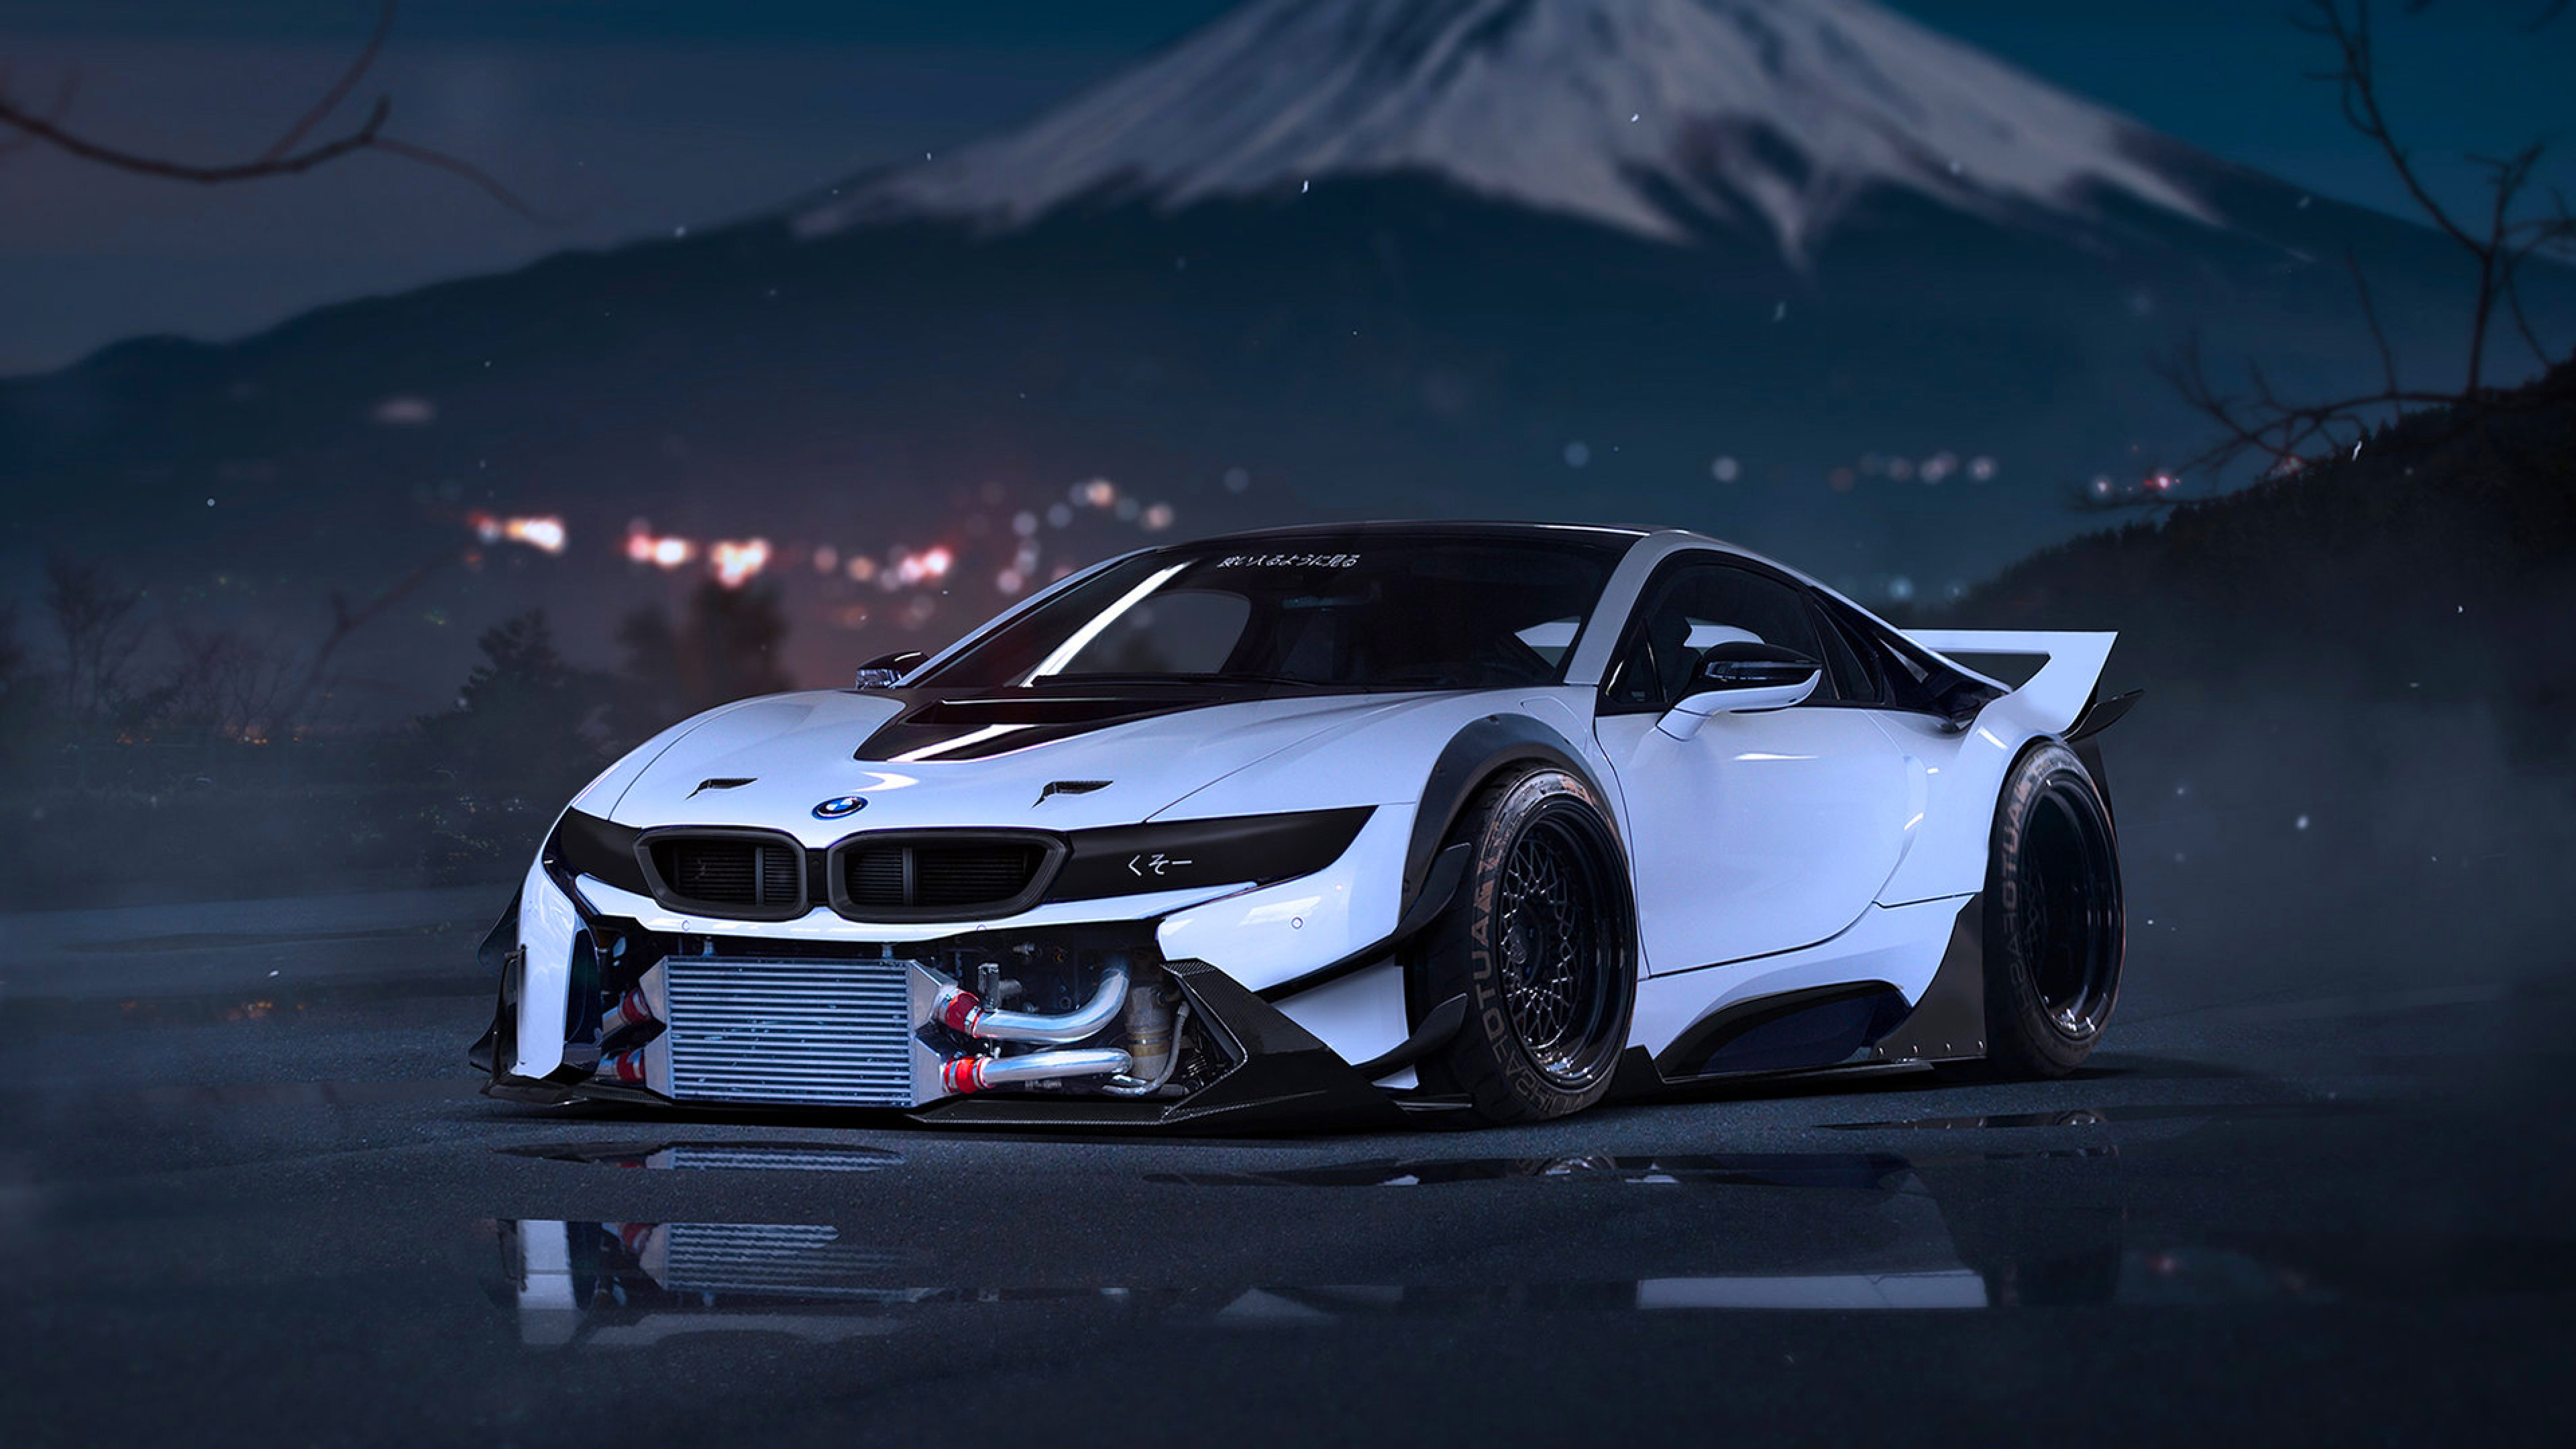 wallpapers bmw wallpapers cars wallpapers custom wallpapers tuned 3840x2160